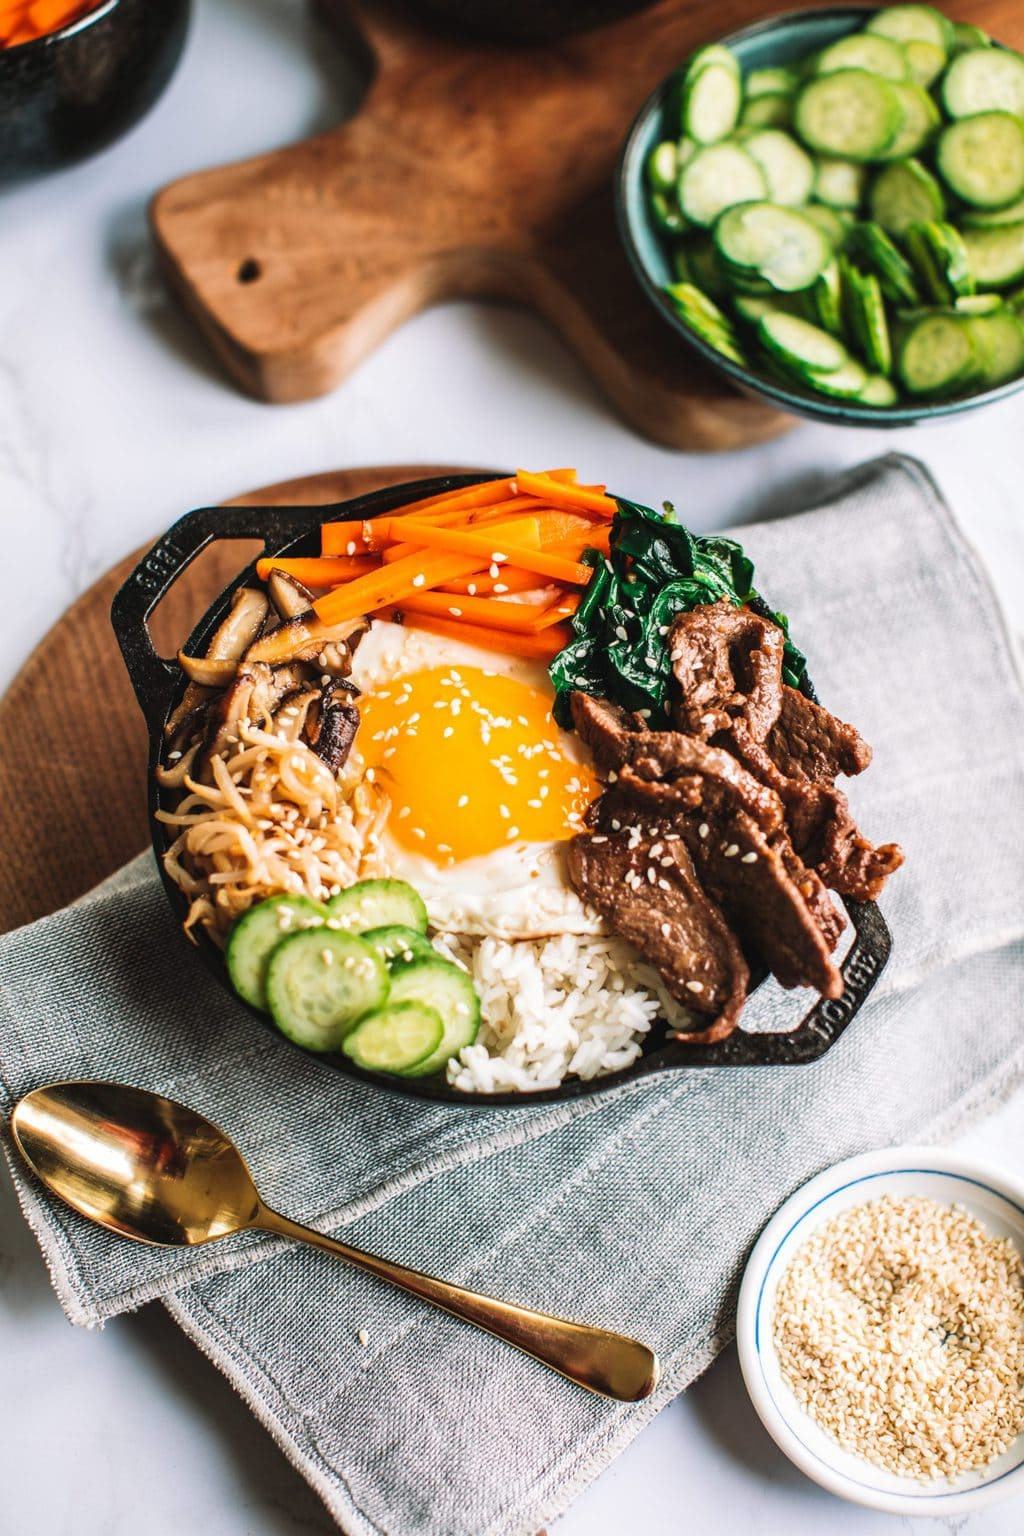 top shot of bibimbap bowl topped with sliced meat, egg, carrots, and other veggies